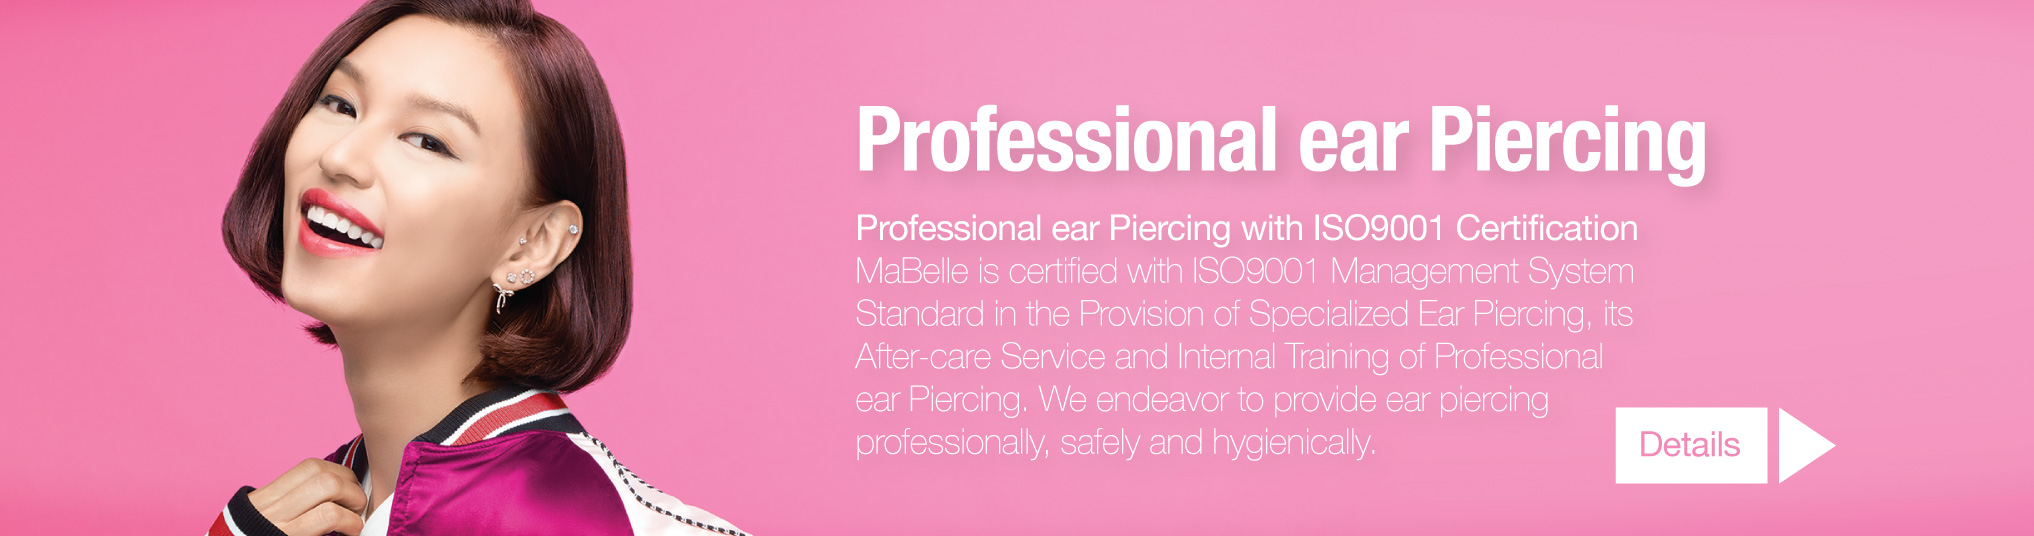 MaBelle Experience Professional Ear Piercing | Bring you Diamond Earrings, safely, gently and centered